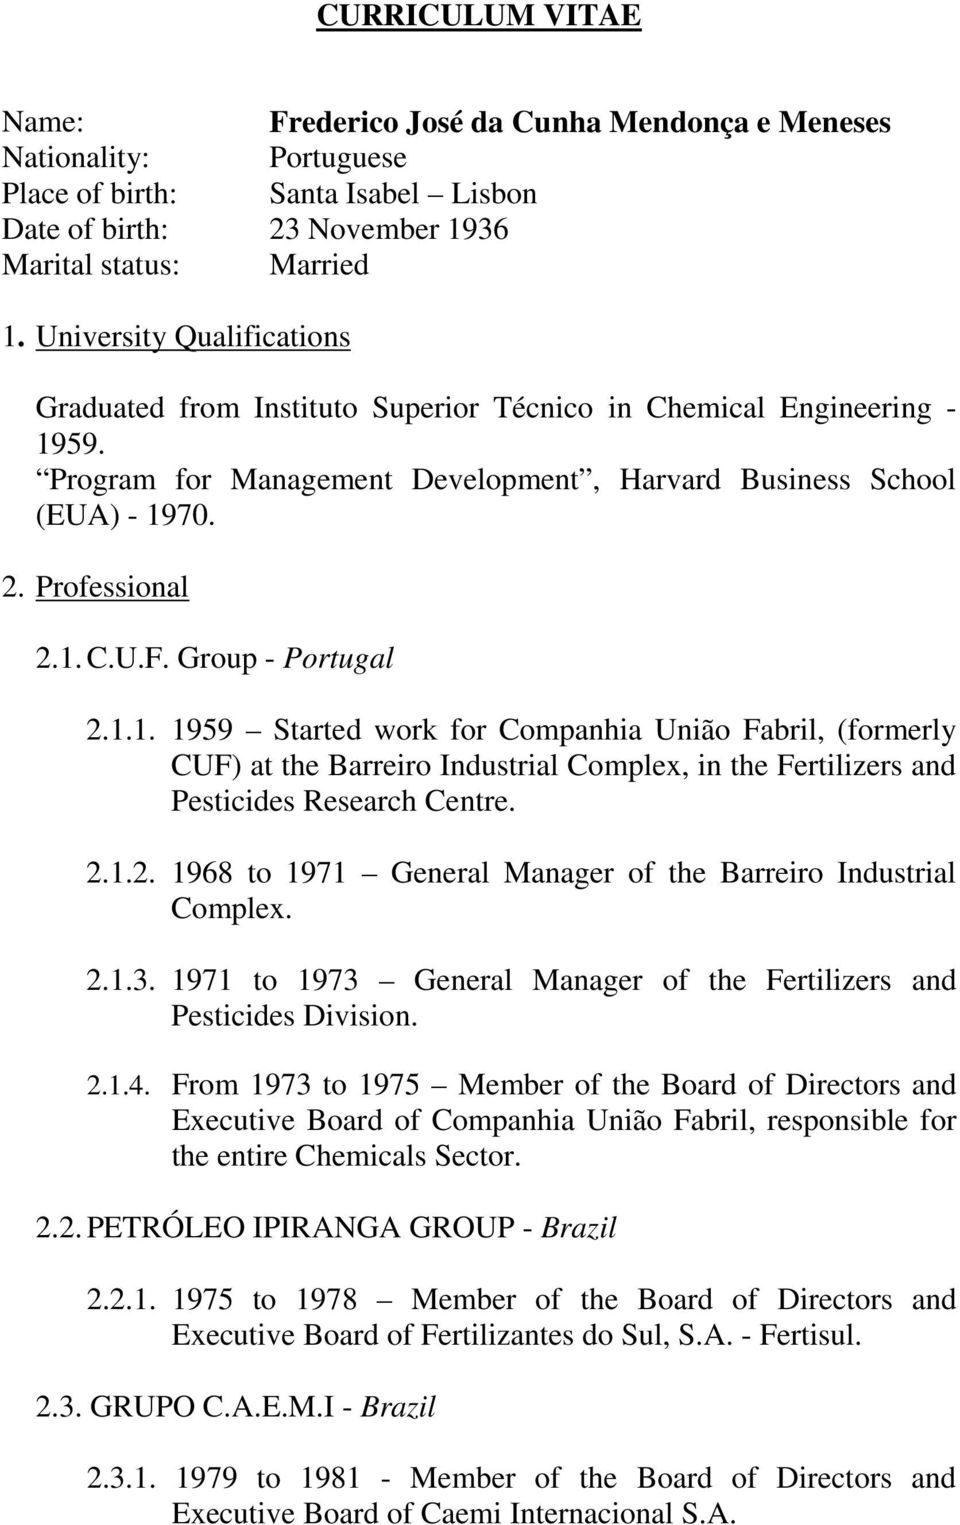 Group - Portugal 2.1.1. 1959 Started work for Companhia União Fabril, (formerly CUF) at the Barreiro Industrial Complex, in the Fertilizers and Pesticides Research Centre. 2.1.2. 1968 to 1971 General Manager of the Barreiro Industrial Complex.